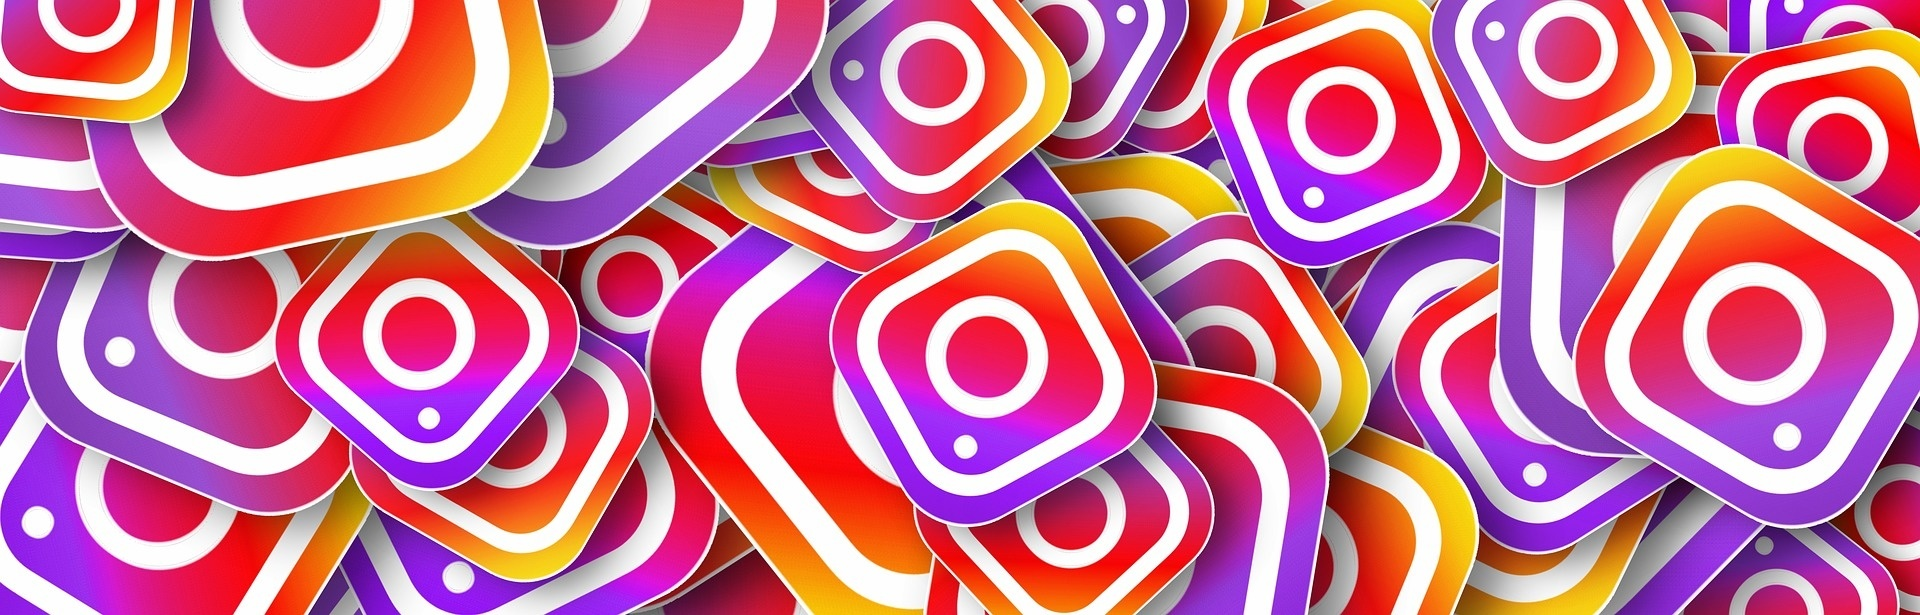 """Instagram wants to hide how many """"likes"""" posts earn. Here's why."""